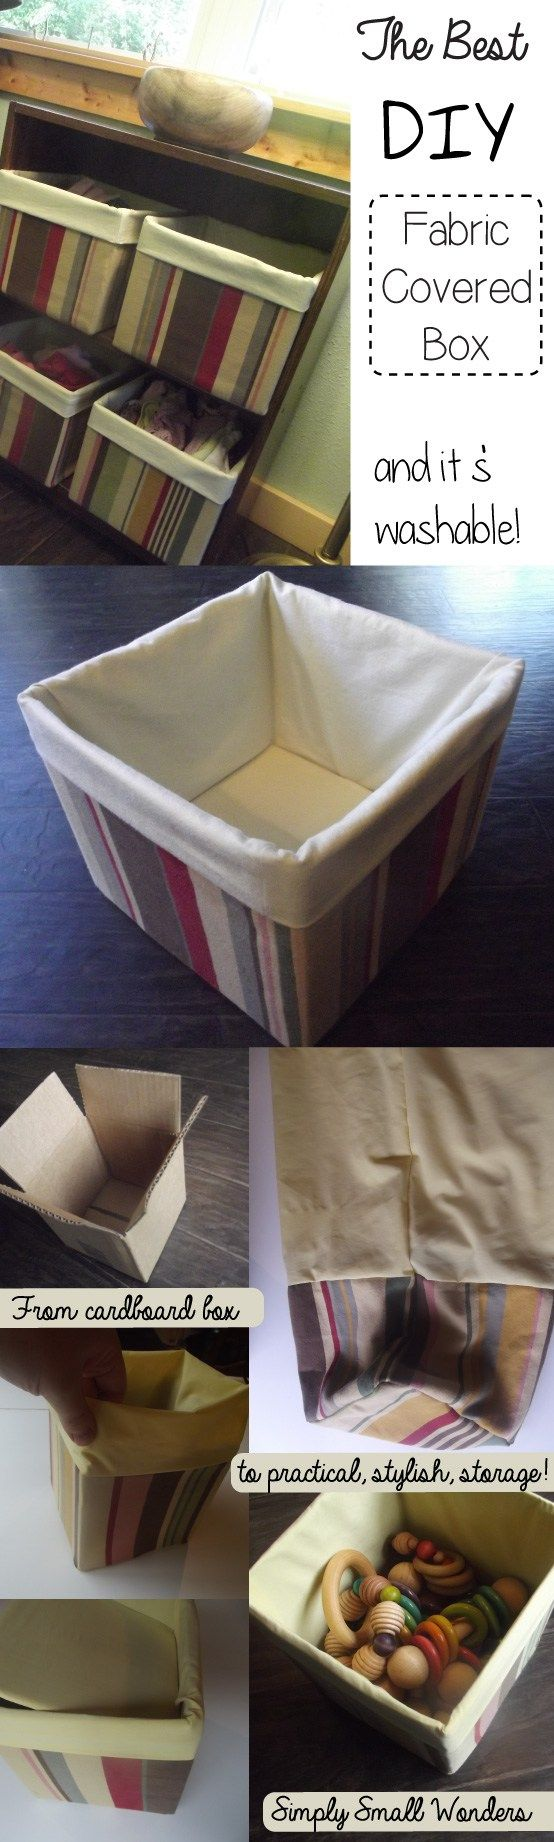 Nice Fabric Covered Boxes With Removable Covers. Quick, Cheap, Easy Storage  Ideas Using A Regular Cardboard Box. Could Probably Use All Those Home  Depot Boxes!